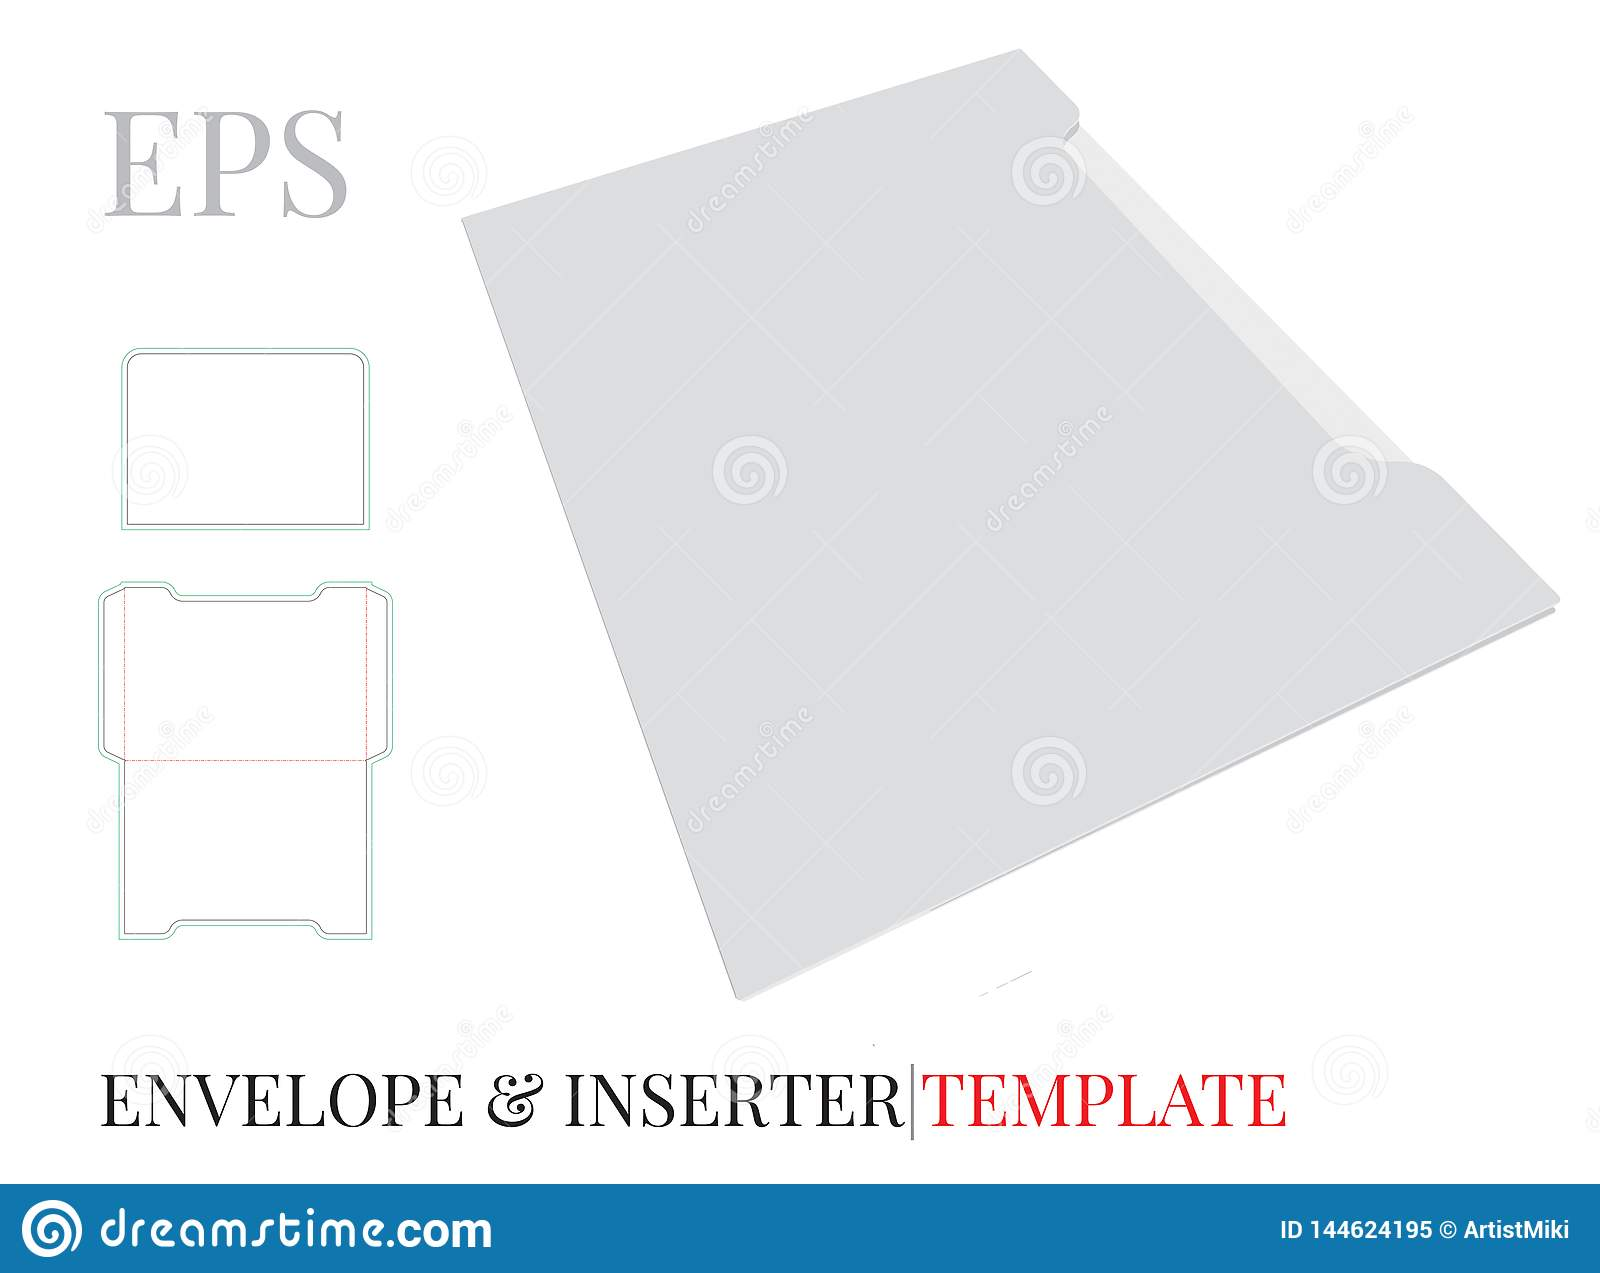 Envelope Template with die line, Vector with die cut / laser cut layers. White, clear, blank, isolated  Envelope mock up